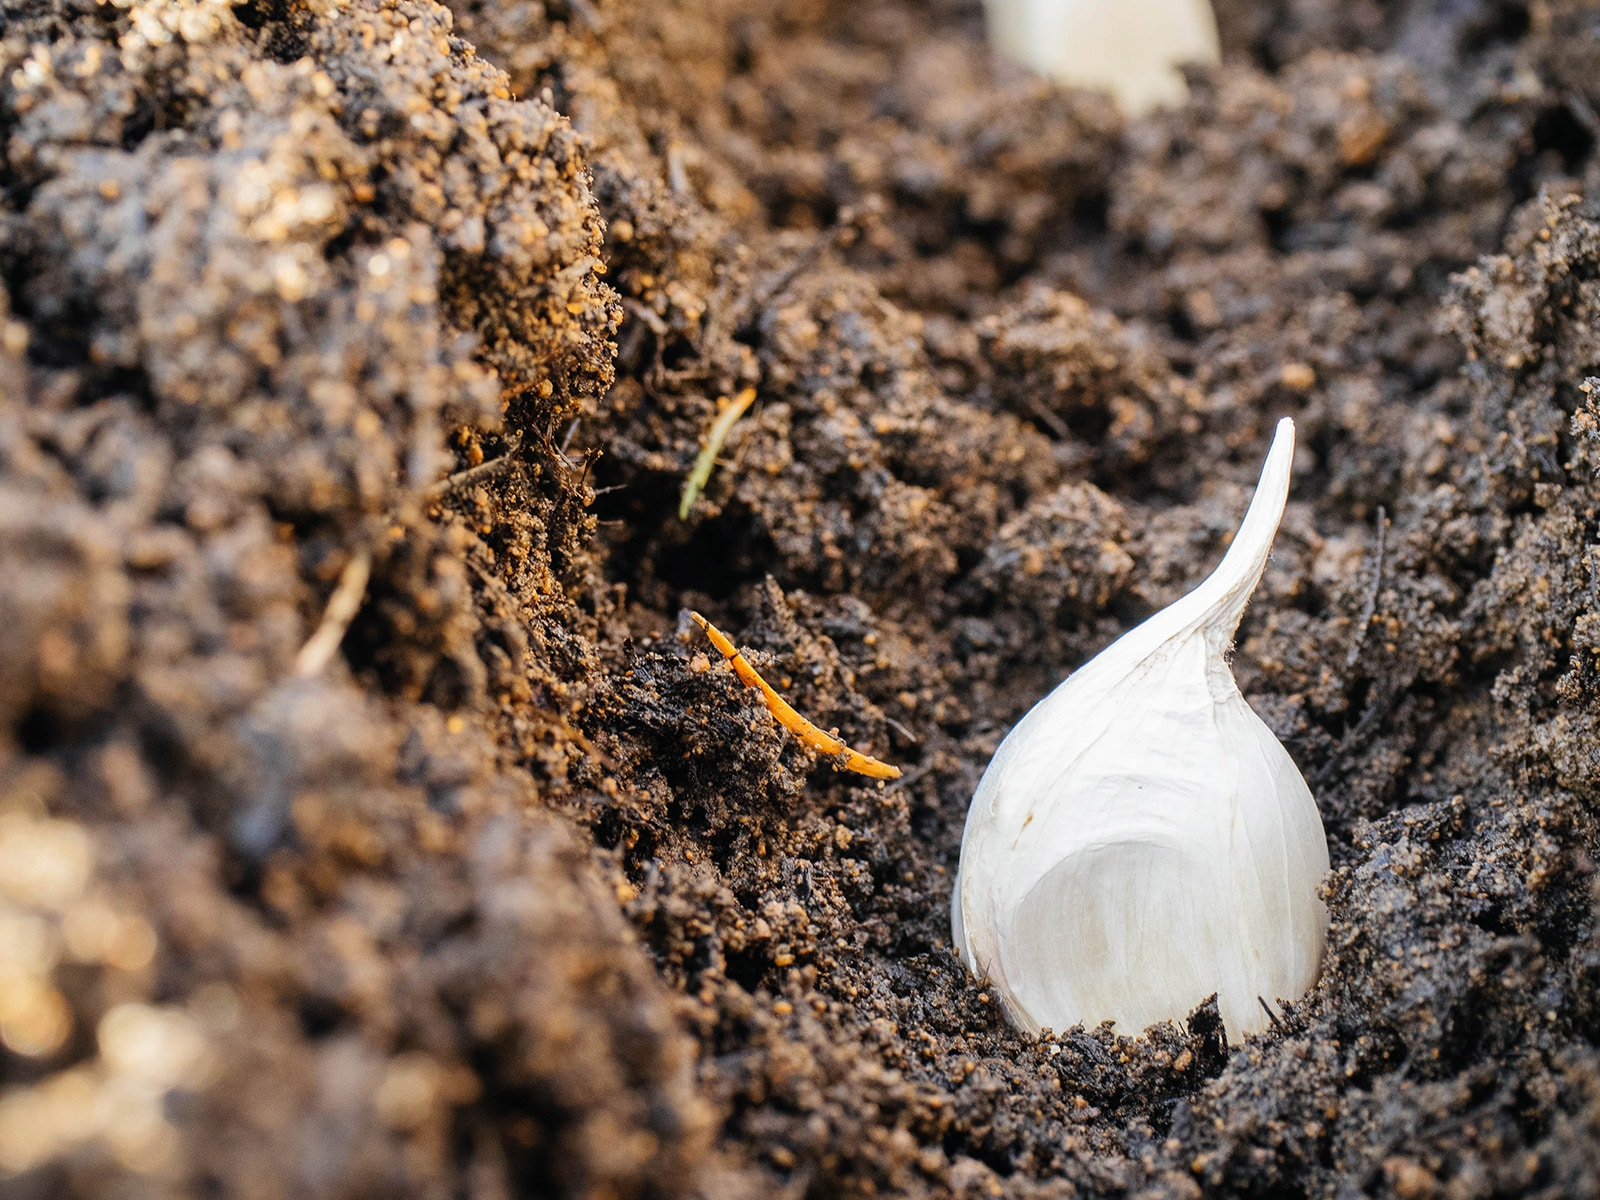 Close-up of garlic clove in a trench